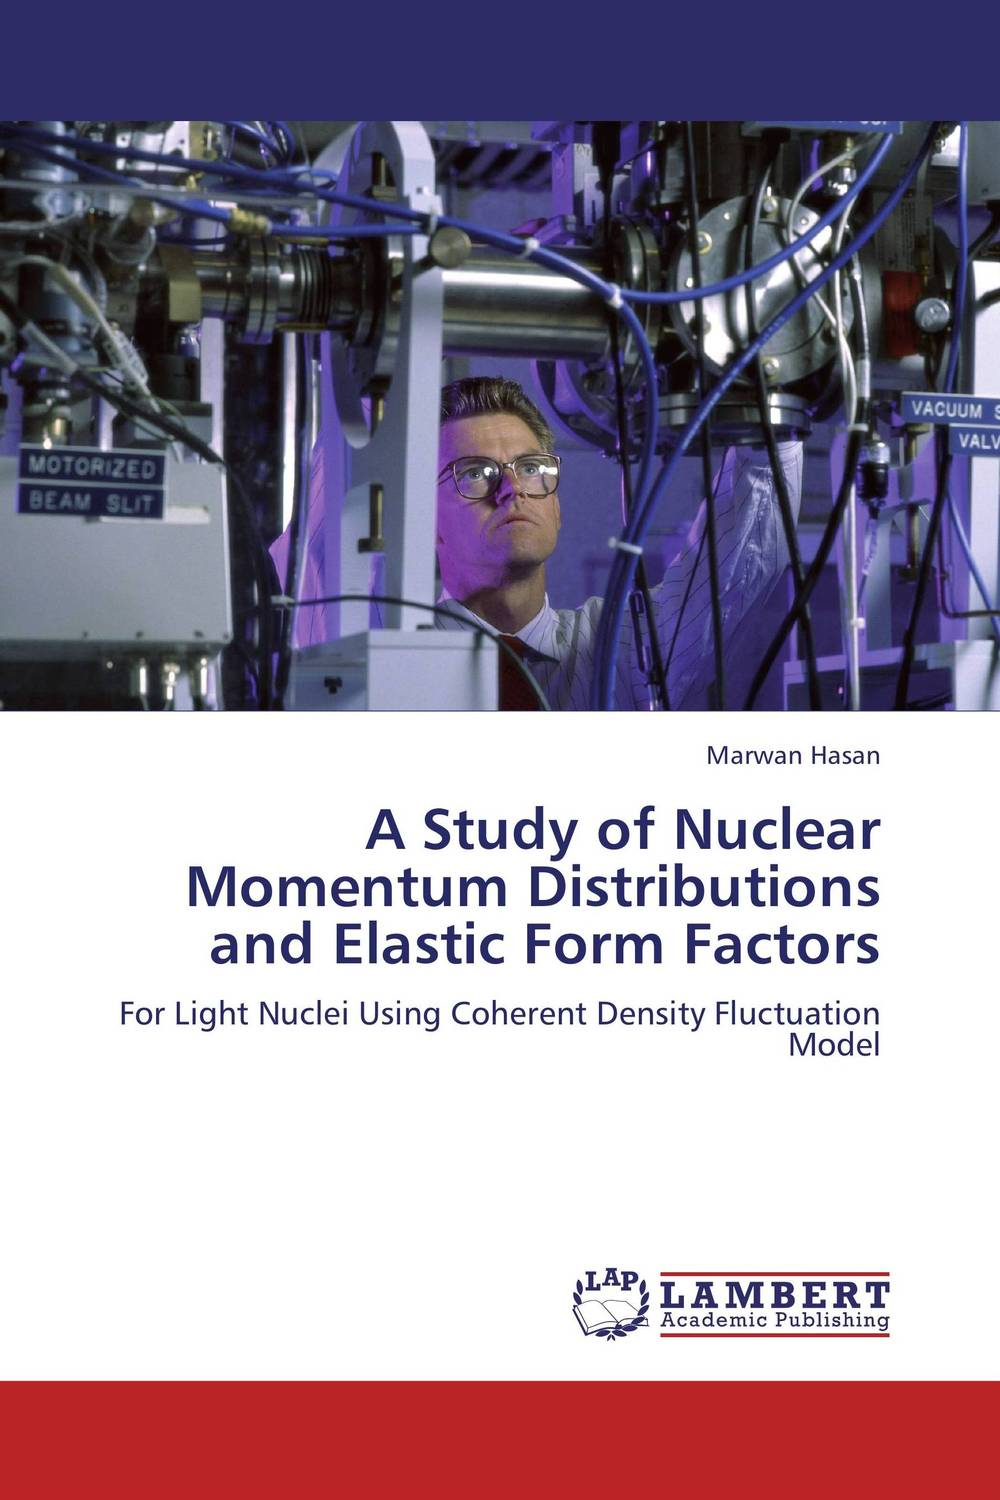 A Study of Nuclear Momentum Distributions and Elastic Form Factors momentum 1m dv44b1br